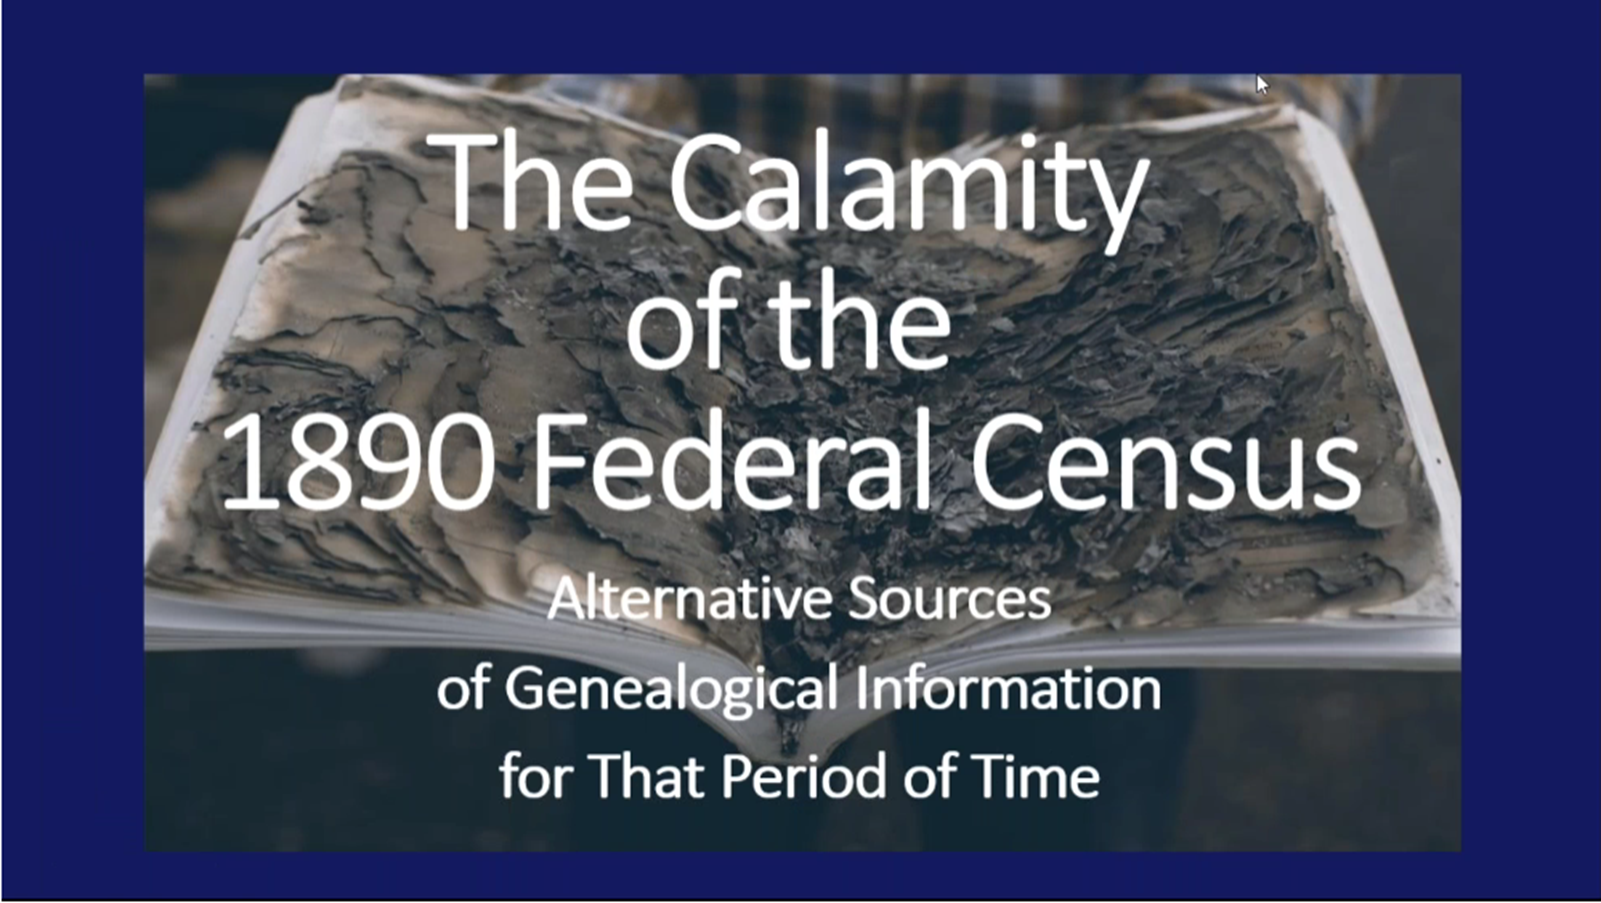 The Calamity of the 1890 Federal Census